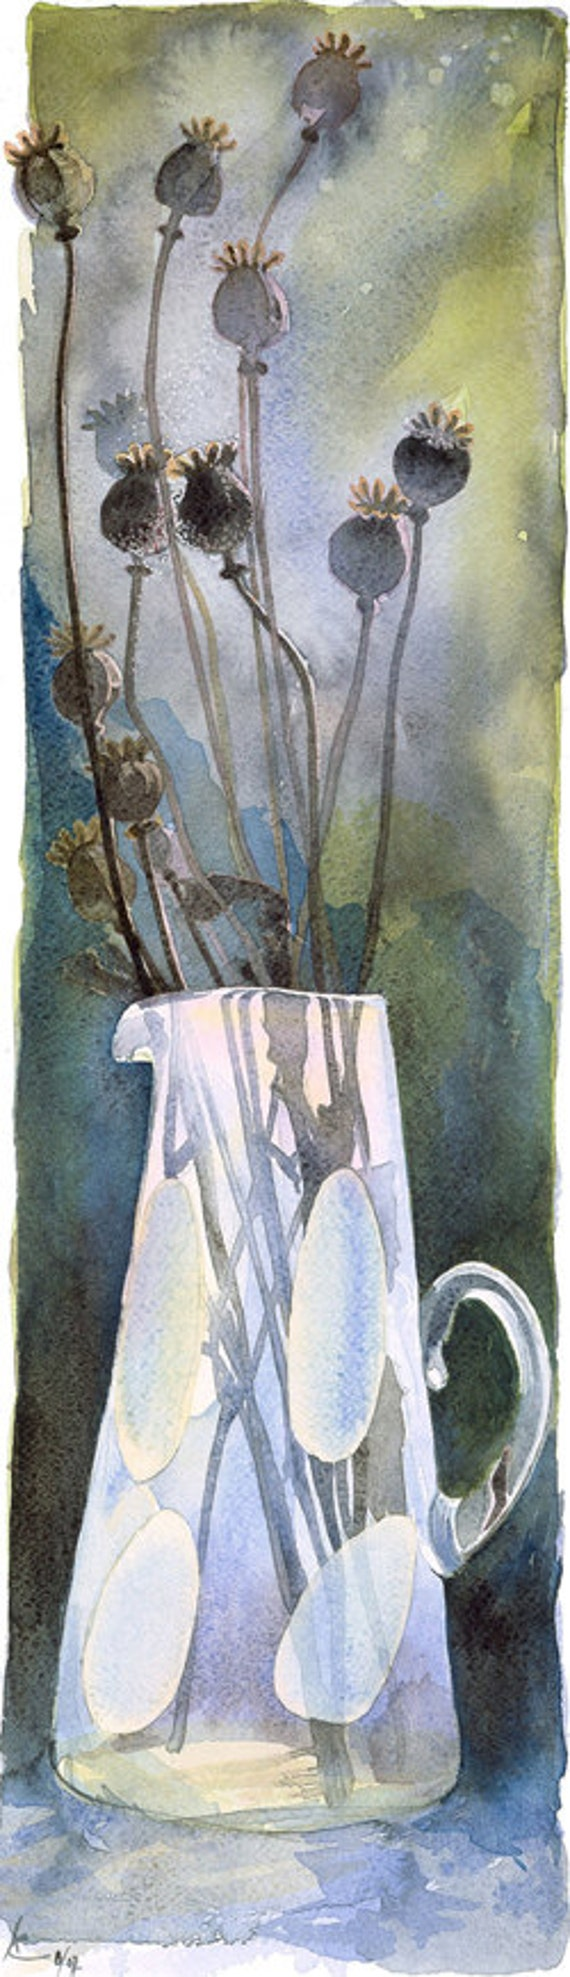 Poppy seed heads in a vase, Watercolour Giclée print